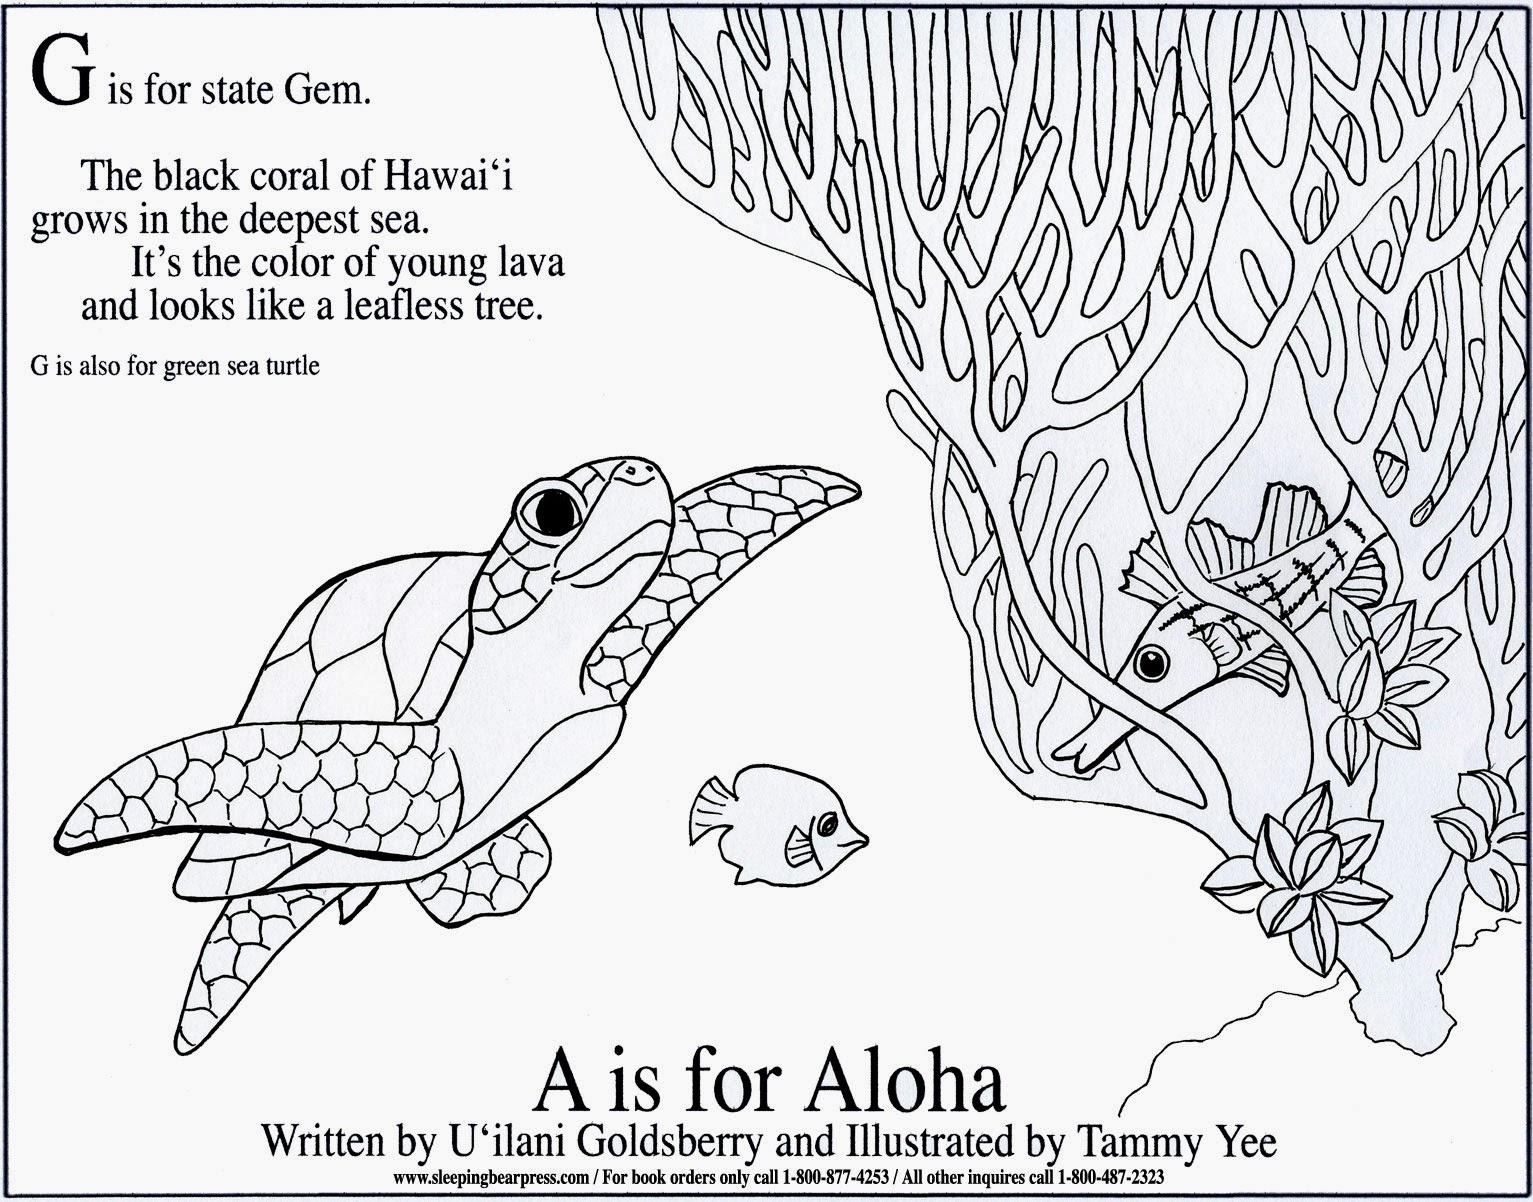 hawaiian coral reef coloring pages - photo#21